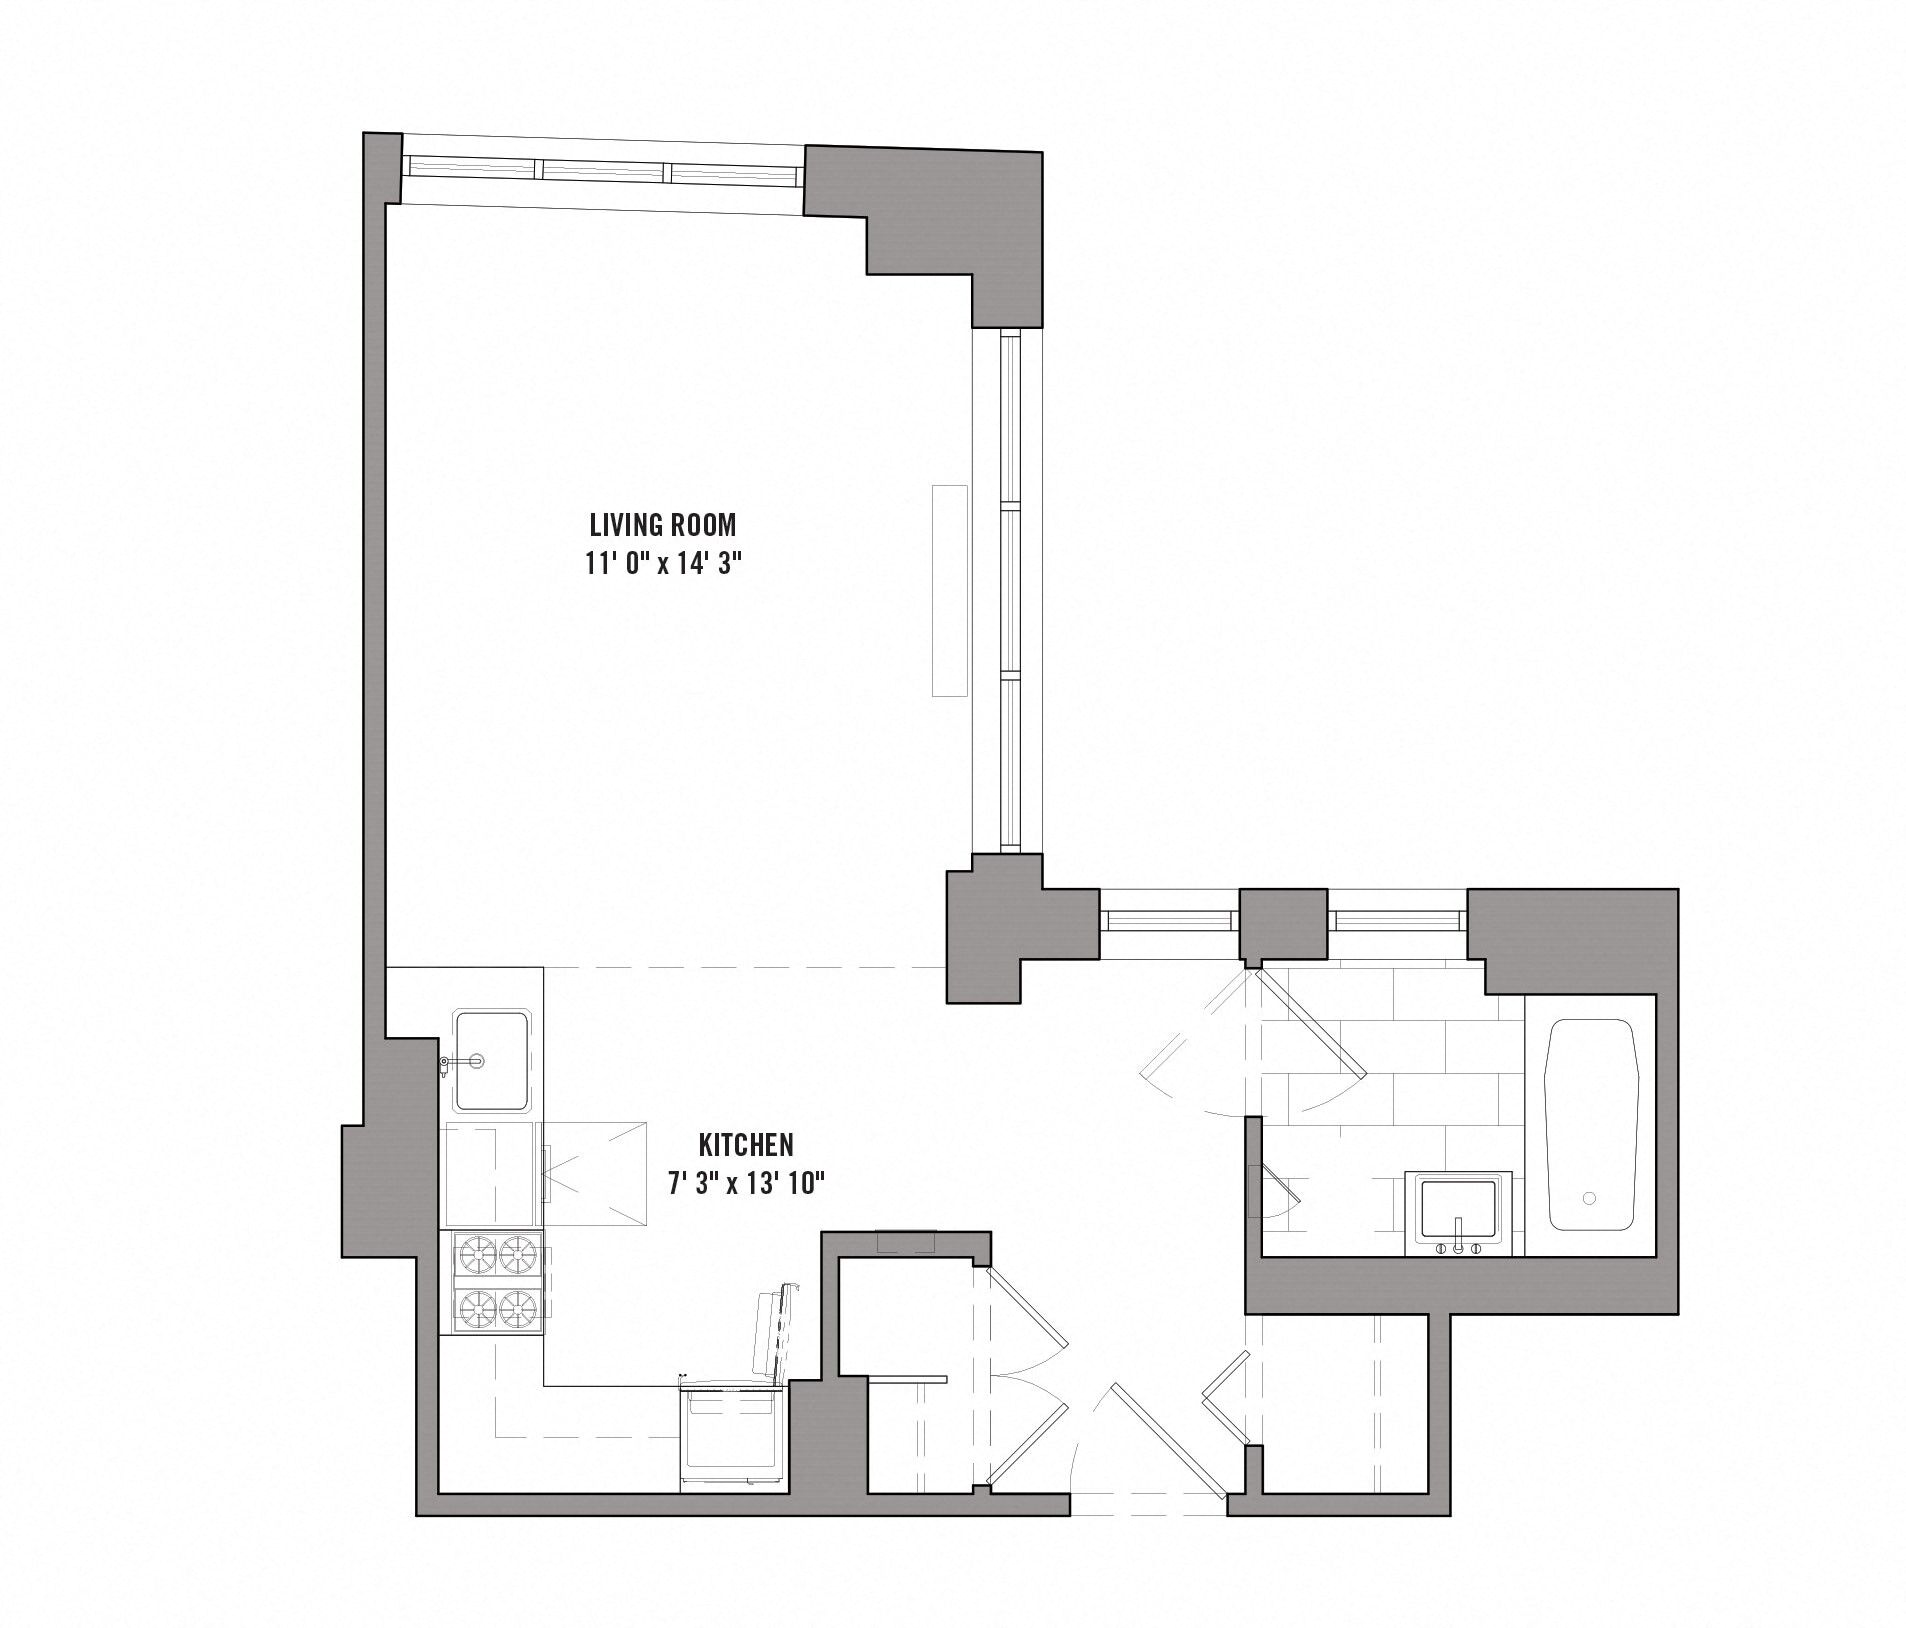 Floor plan diagram for unit F 3-15. Studio apartment with bathroom, kitchen, and living area.